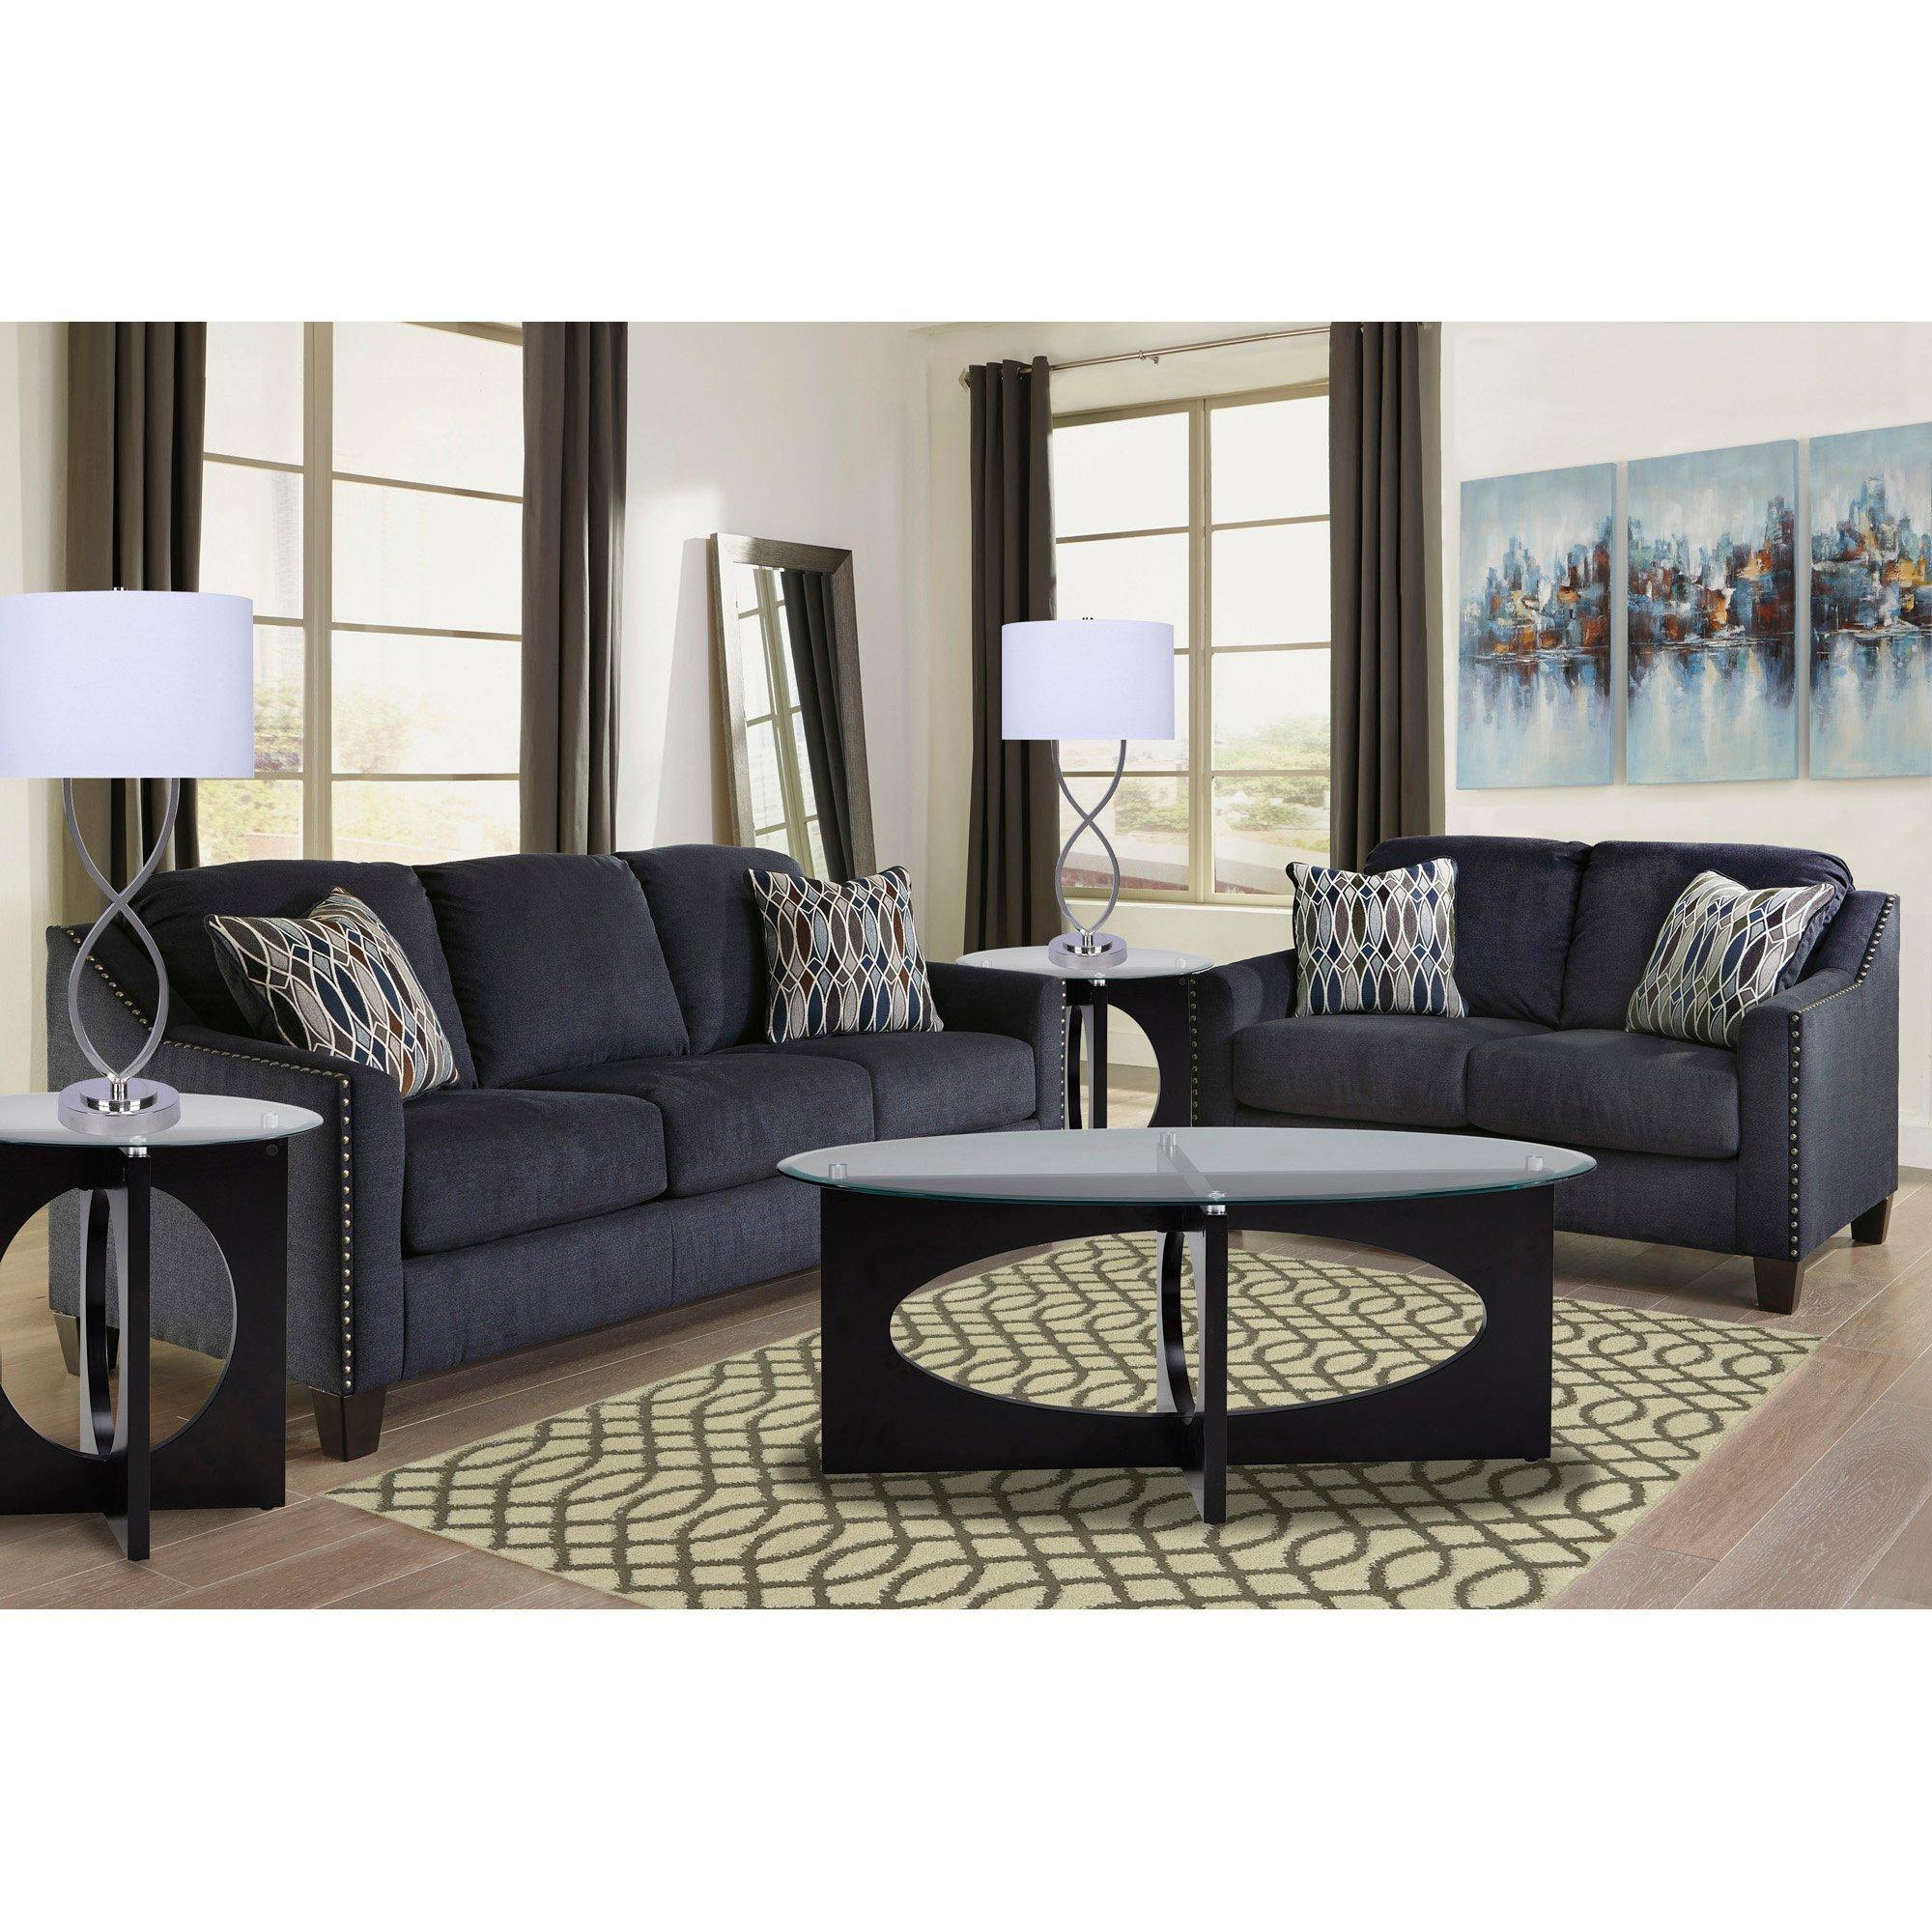 Rent To Own Ashley 7 Piece Creeal Heights Living Room Collection At Aaron S Today